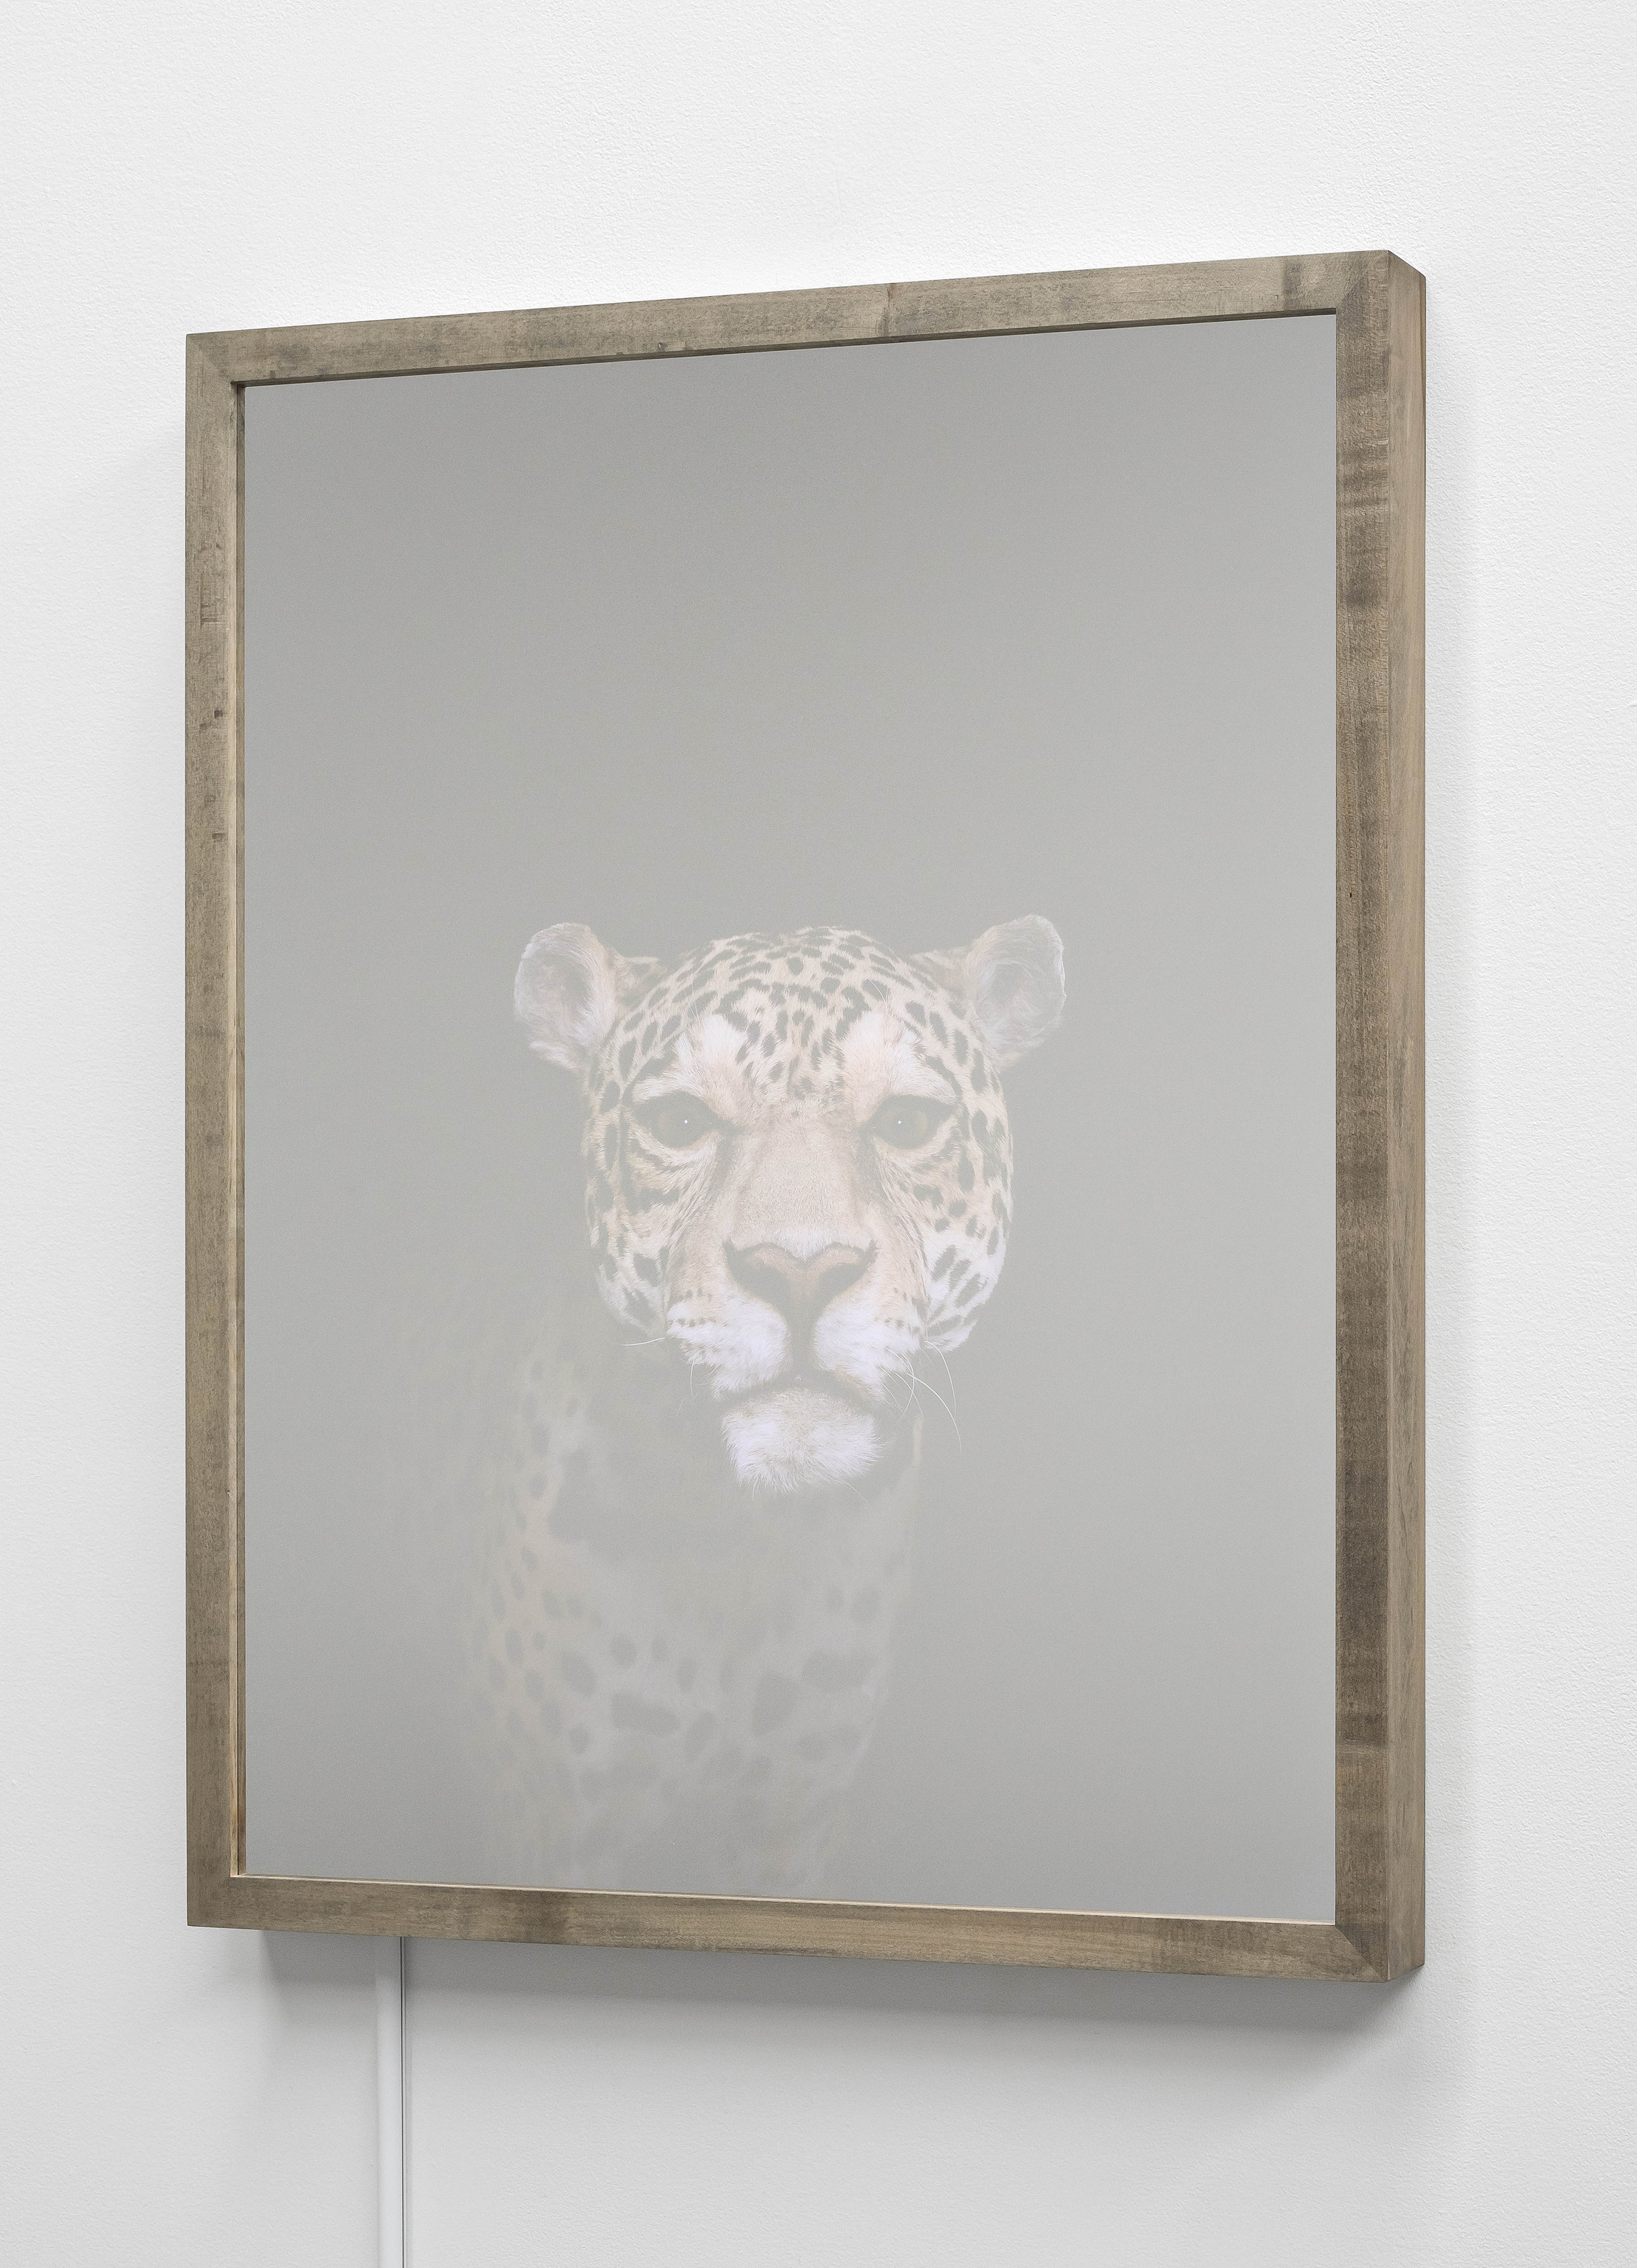 CHRISTINA SEELY Jaguar, Panthera onca - Near Threatened Kinetic Mirrored Lightbox  Available size:  30 x 24 in | Edition of 3 + 1AP 20 x 16 in | Edition of 3 + 1AP